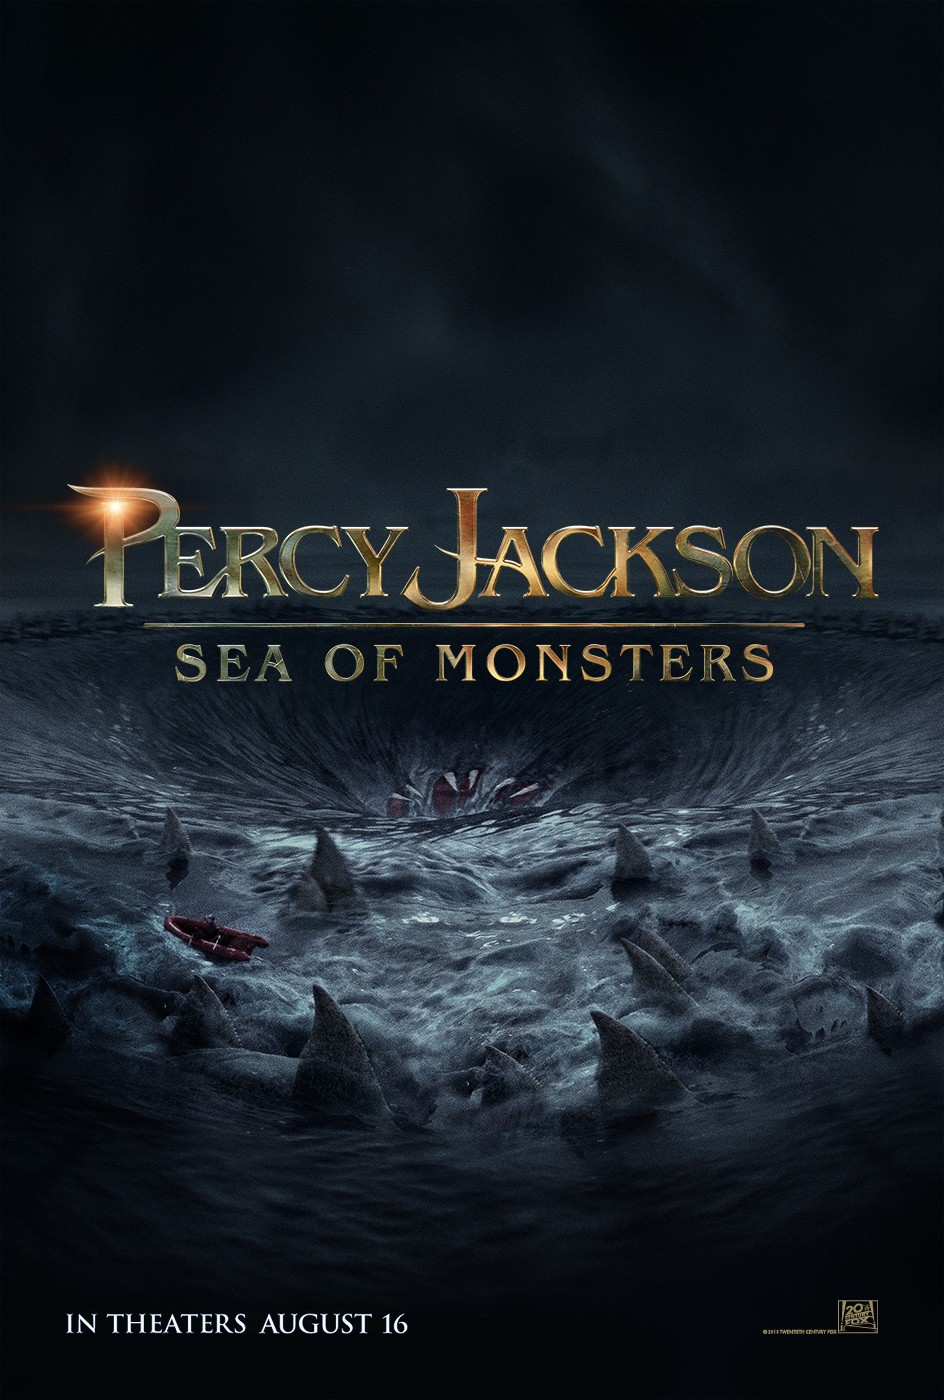 percy_jackson_sea_of_monsters_poster_2013_01.jpg